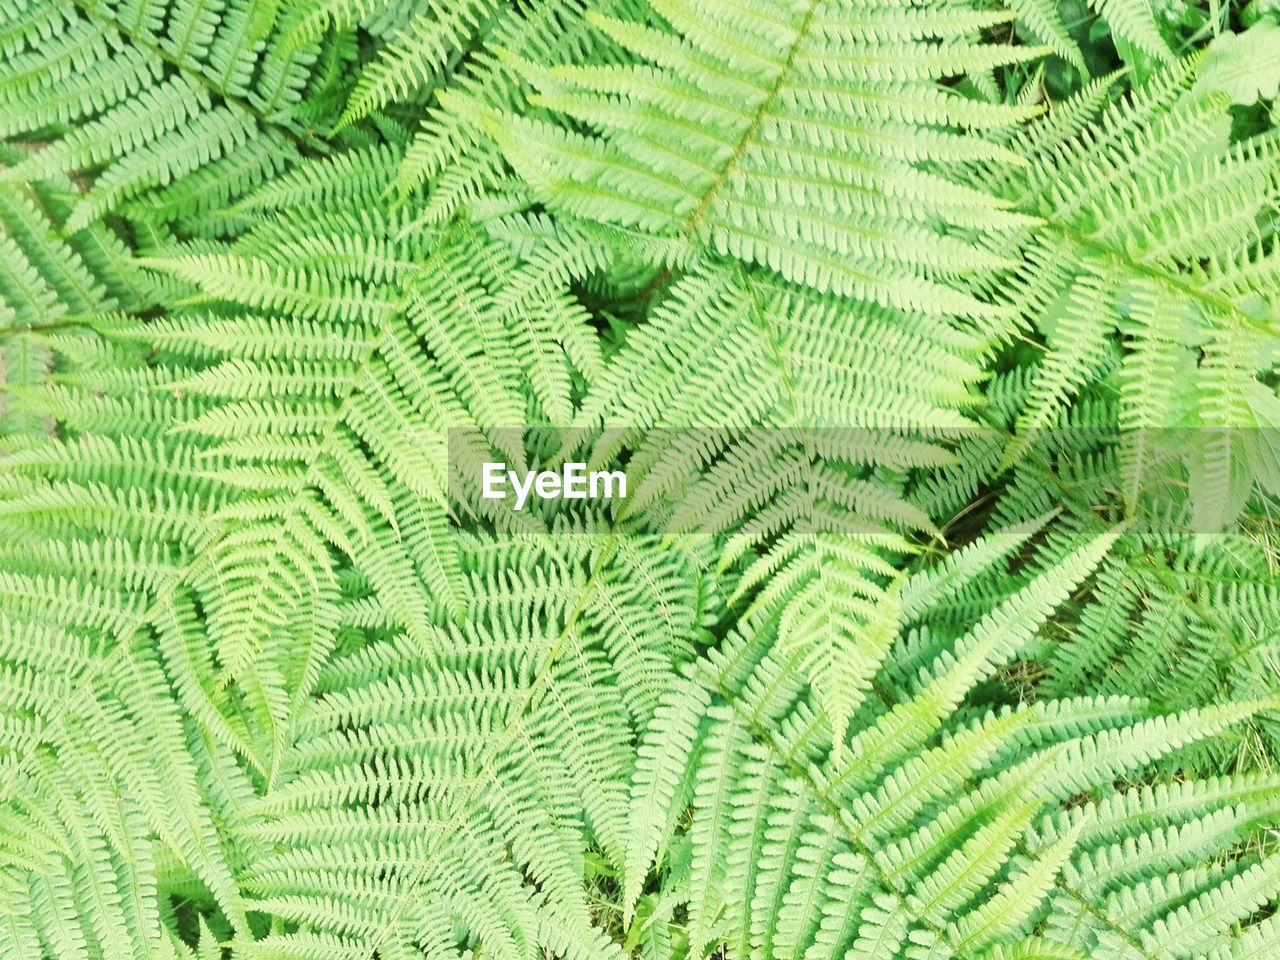 green color, leaf, plant part, plant, no people, backgrounds, fern, close-up, full frame, nature, growth, tree, beauty in nature, extreme close-up, natural pattern, pattern, textured, outdoors, day, macro, palm leaf, rainforest